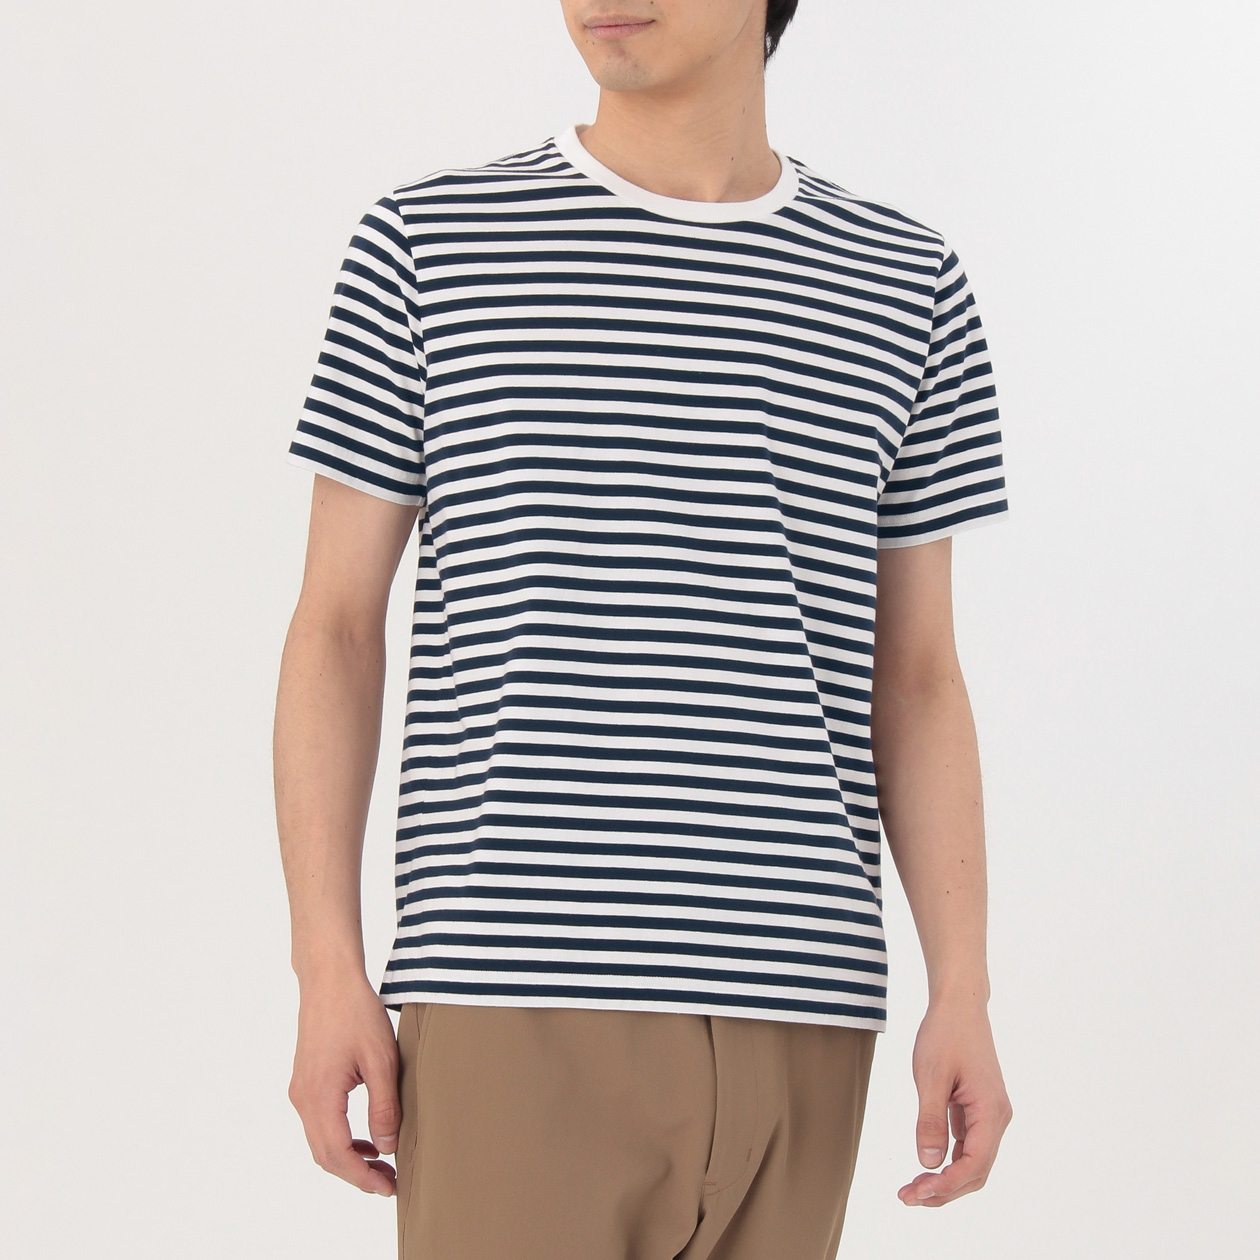 Men's Organic Cotton Short Sleeve T-shirt, $13.90